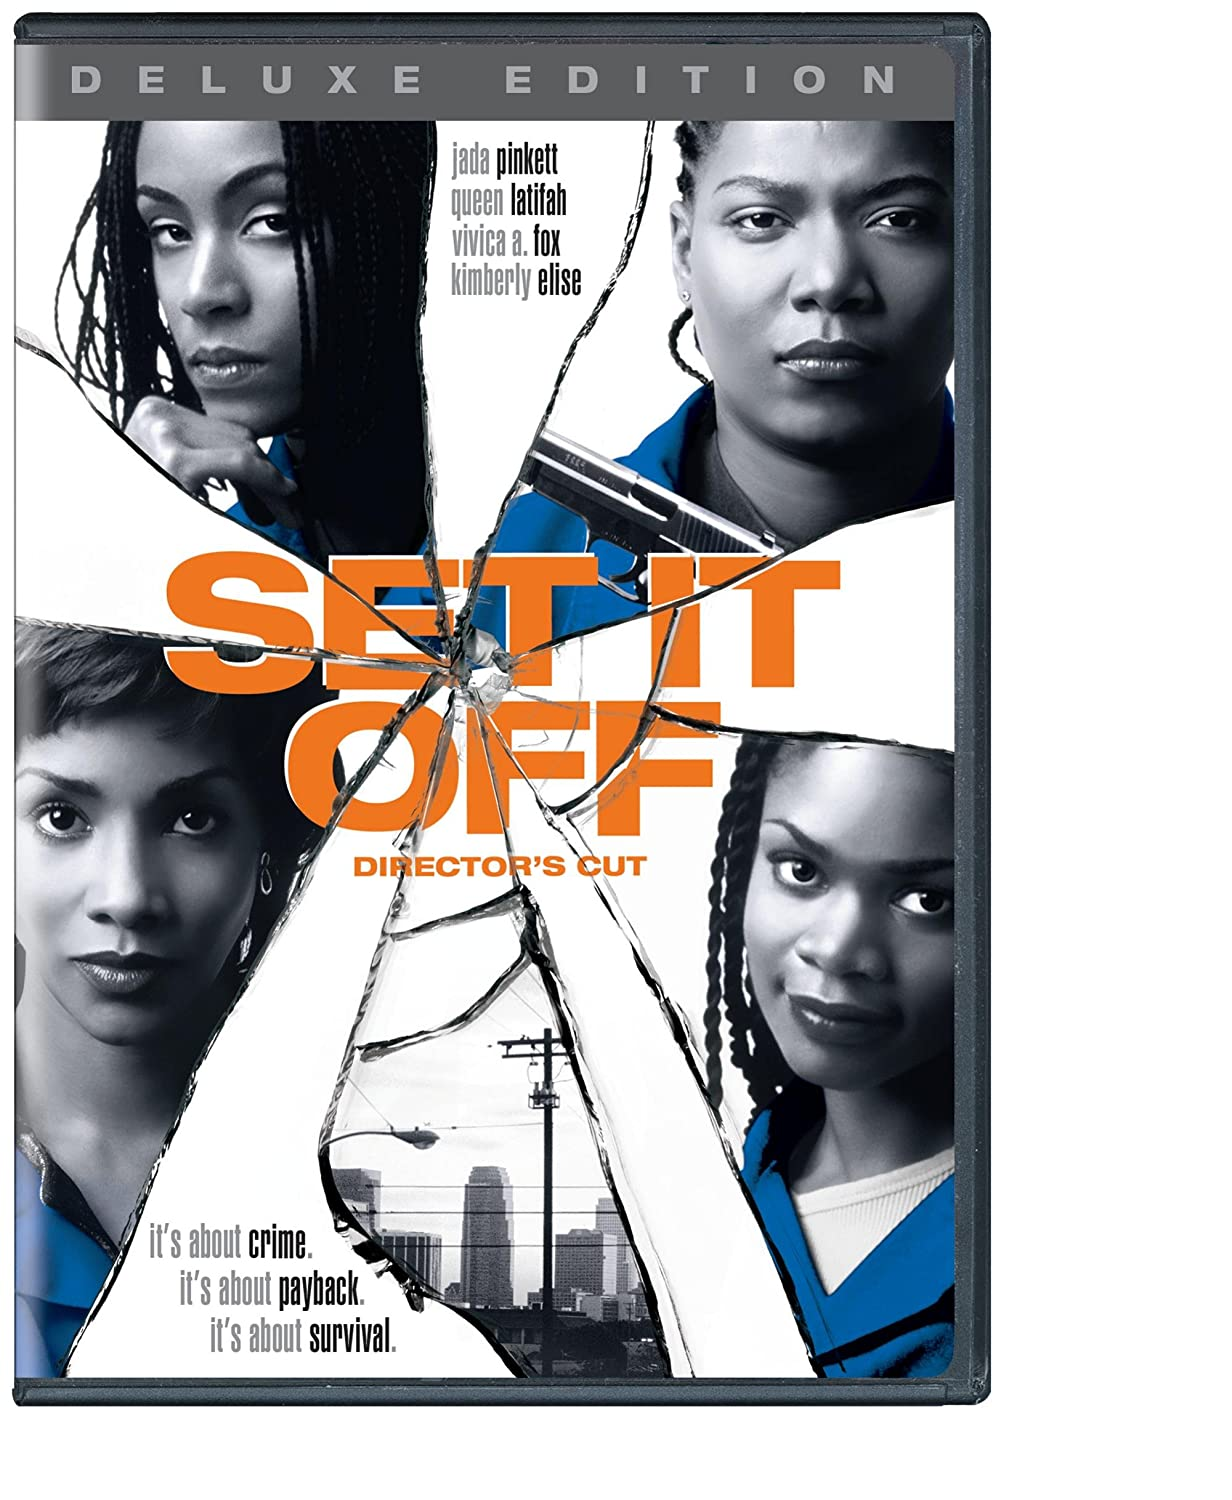 Set It Off: Deluxe Edition (Version française) Various Warner Bros. Home Video 5822283 Action / Adventure